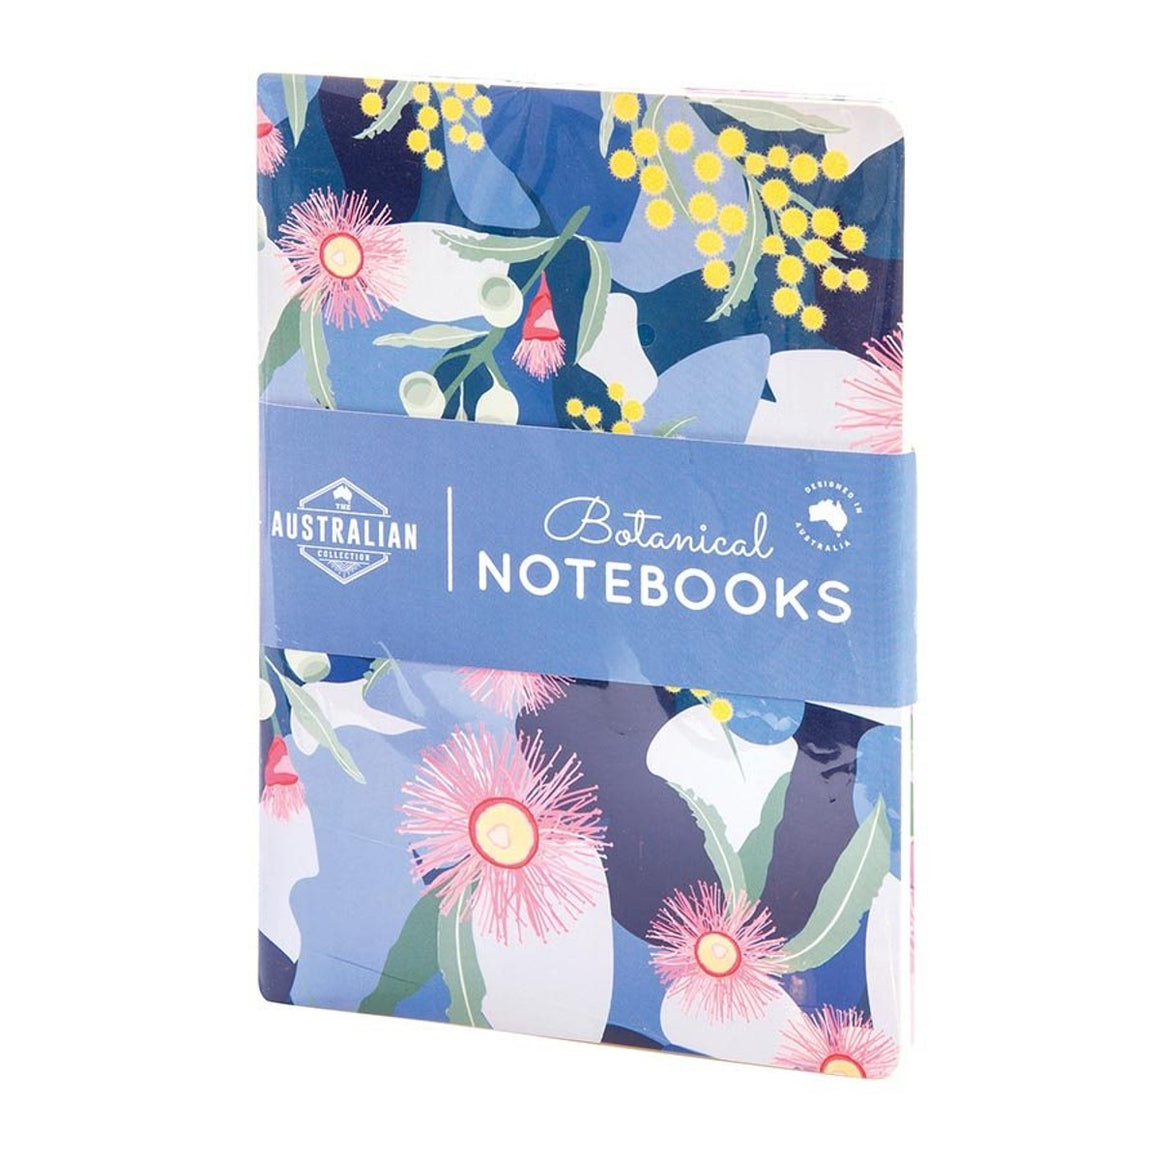 The cover of a notebook featuring an illustrative design depicting Golden Wattle and Flowering Gum.